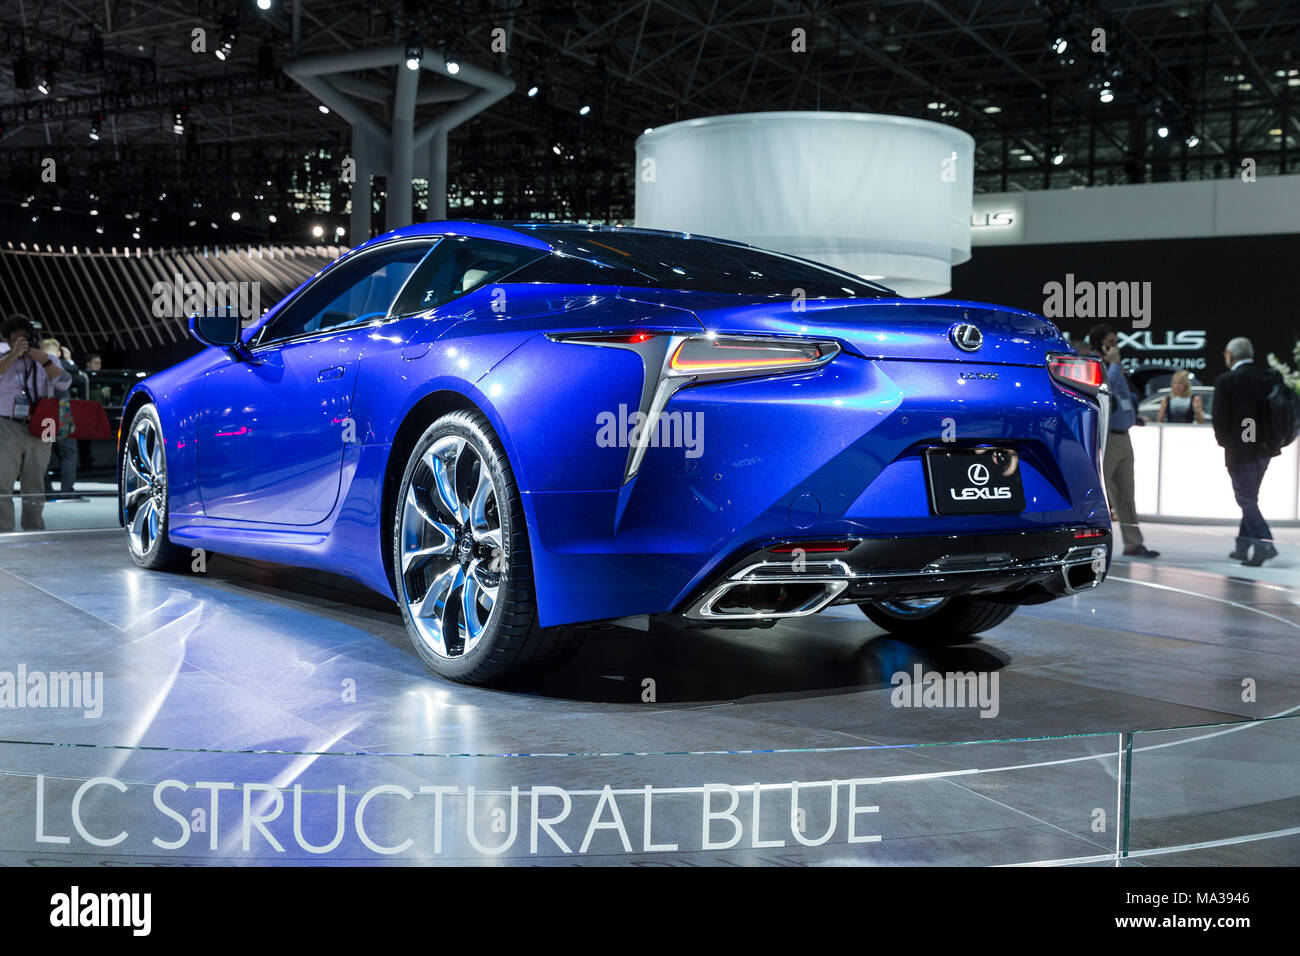 Lexus LC LC Structural Blue Coupe On Display At New York - Javits car show